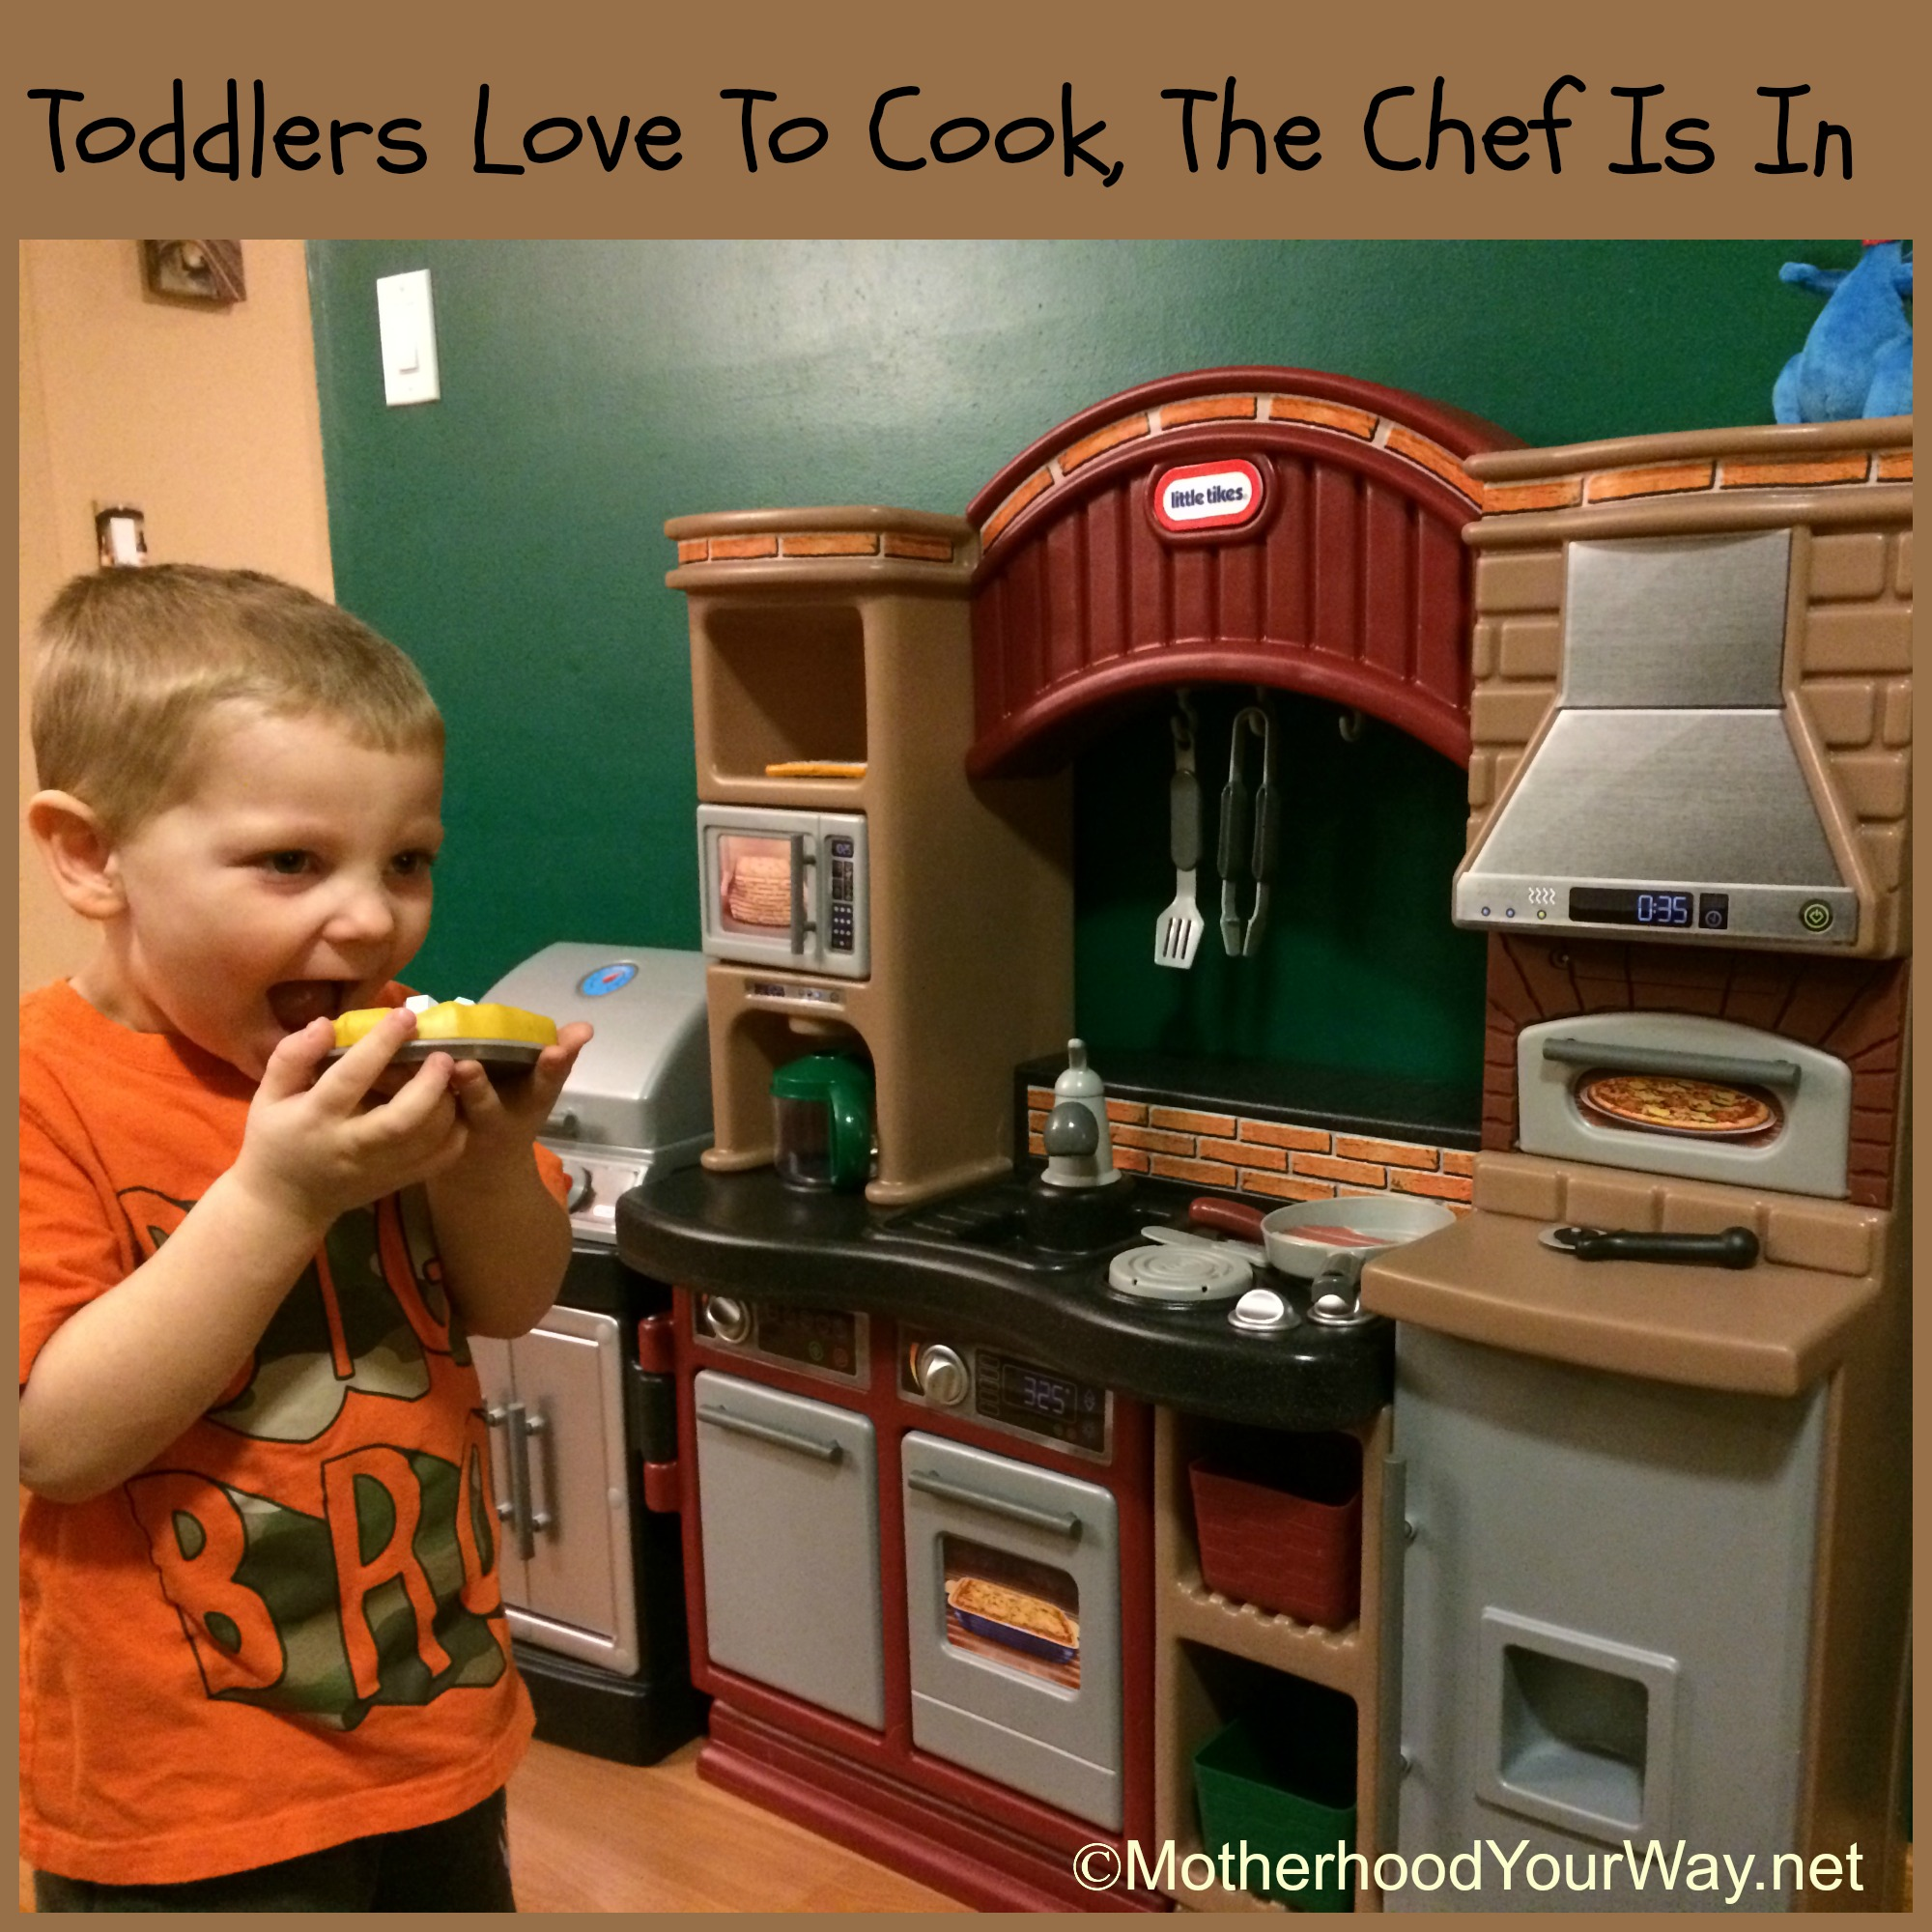 Toddlers Love To Cook, The Chef Is In